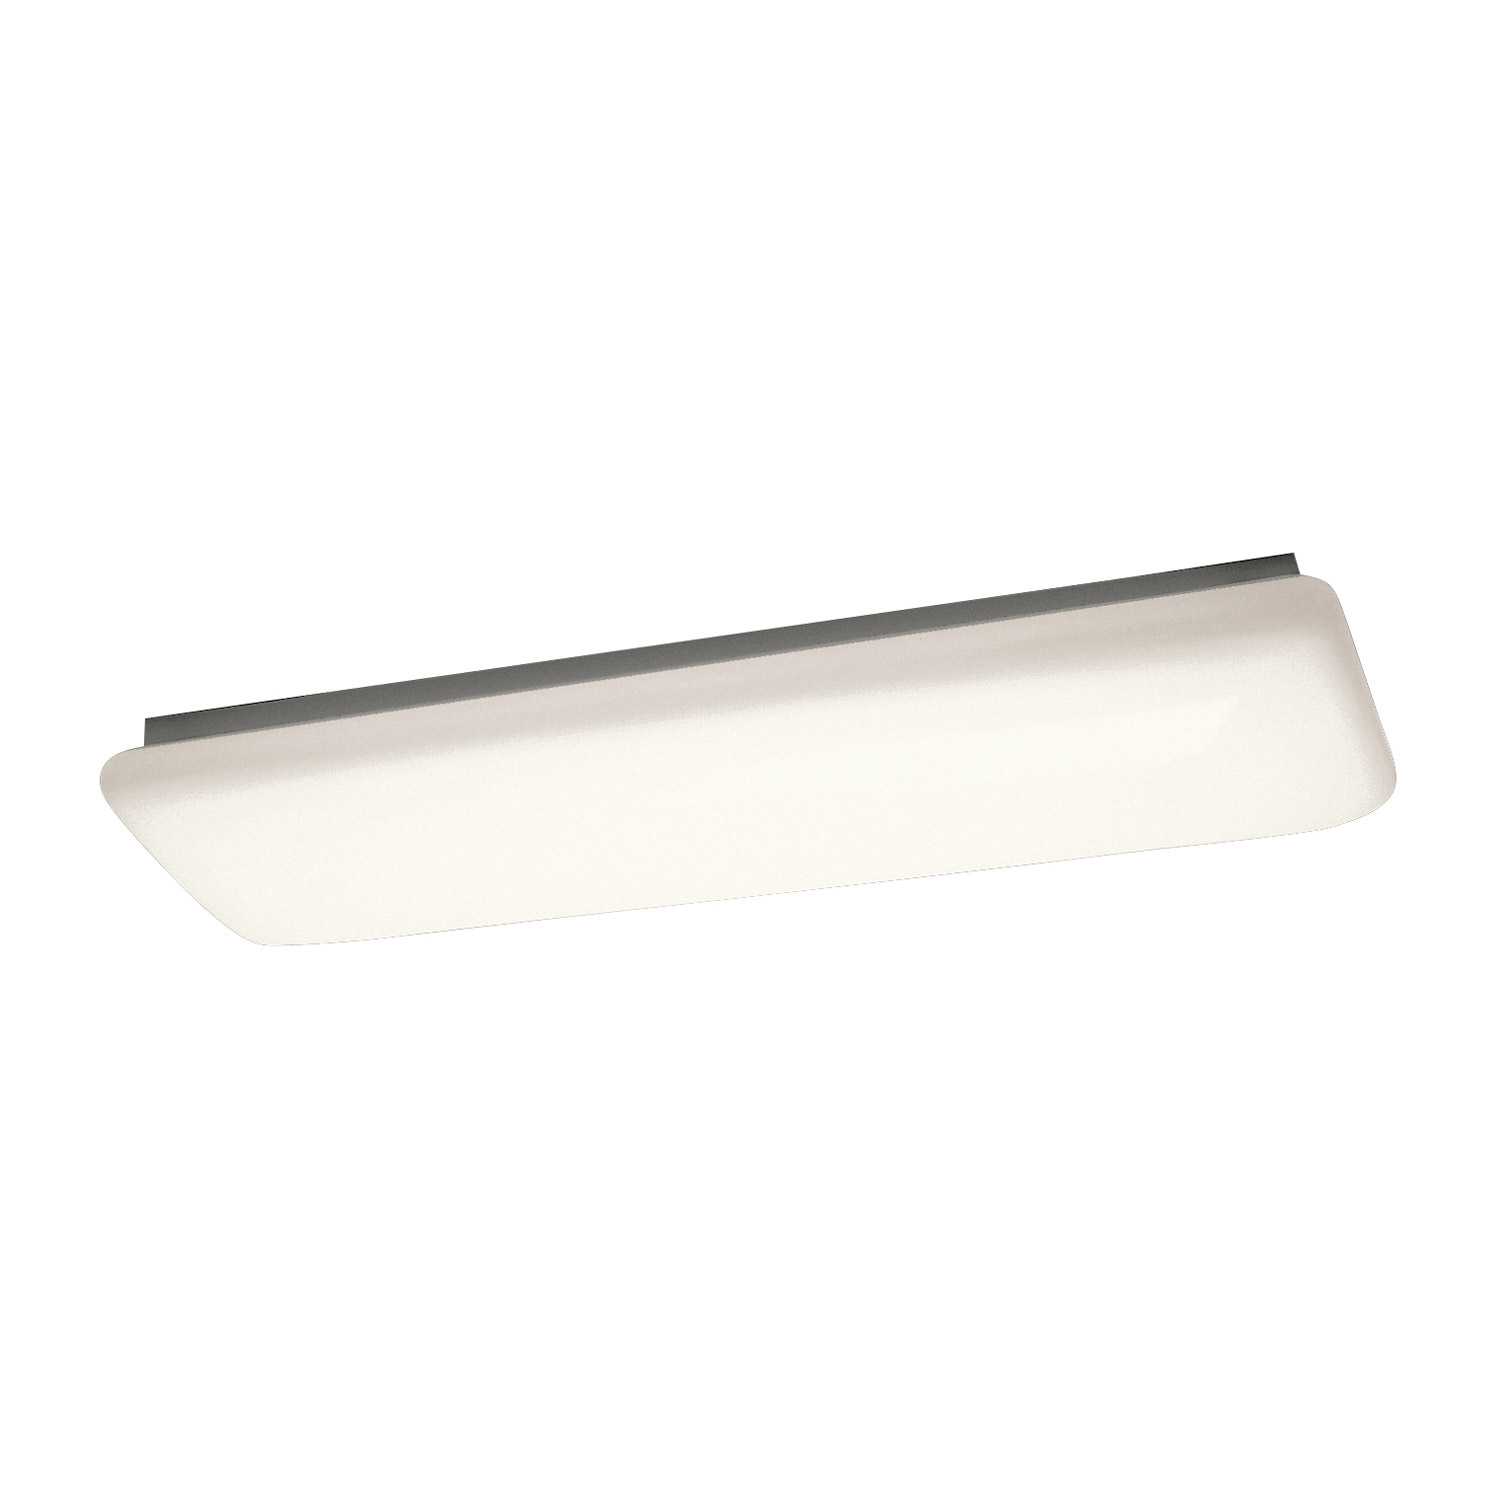 Kichler 10301wh fluorescent fixture group energy efficient flush kichler 10301wh fluorescent fixture group energy efficient flush mount ceiling fixture aloadofball Gallery